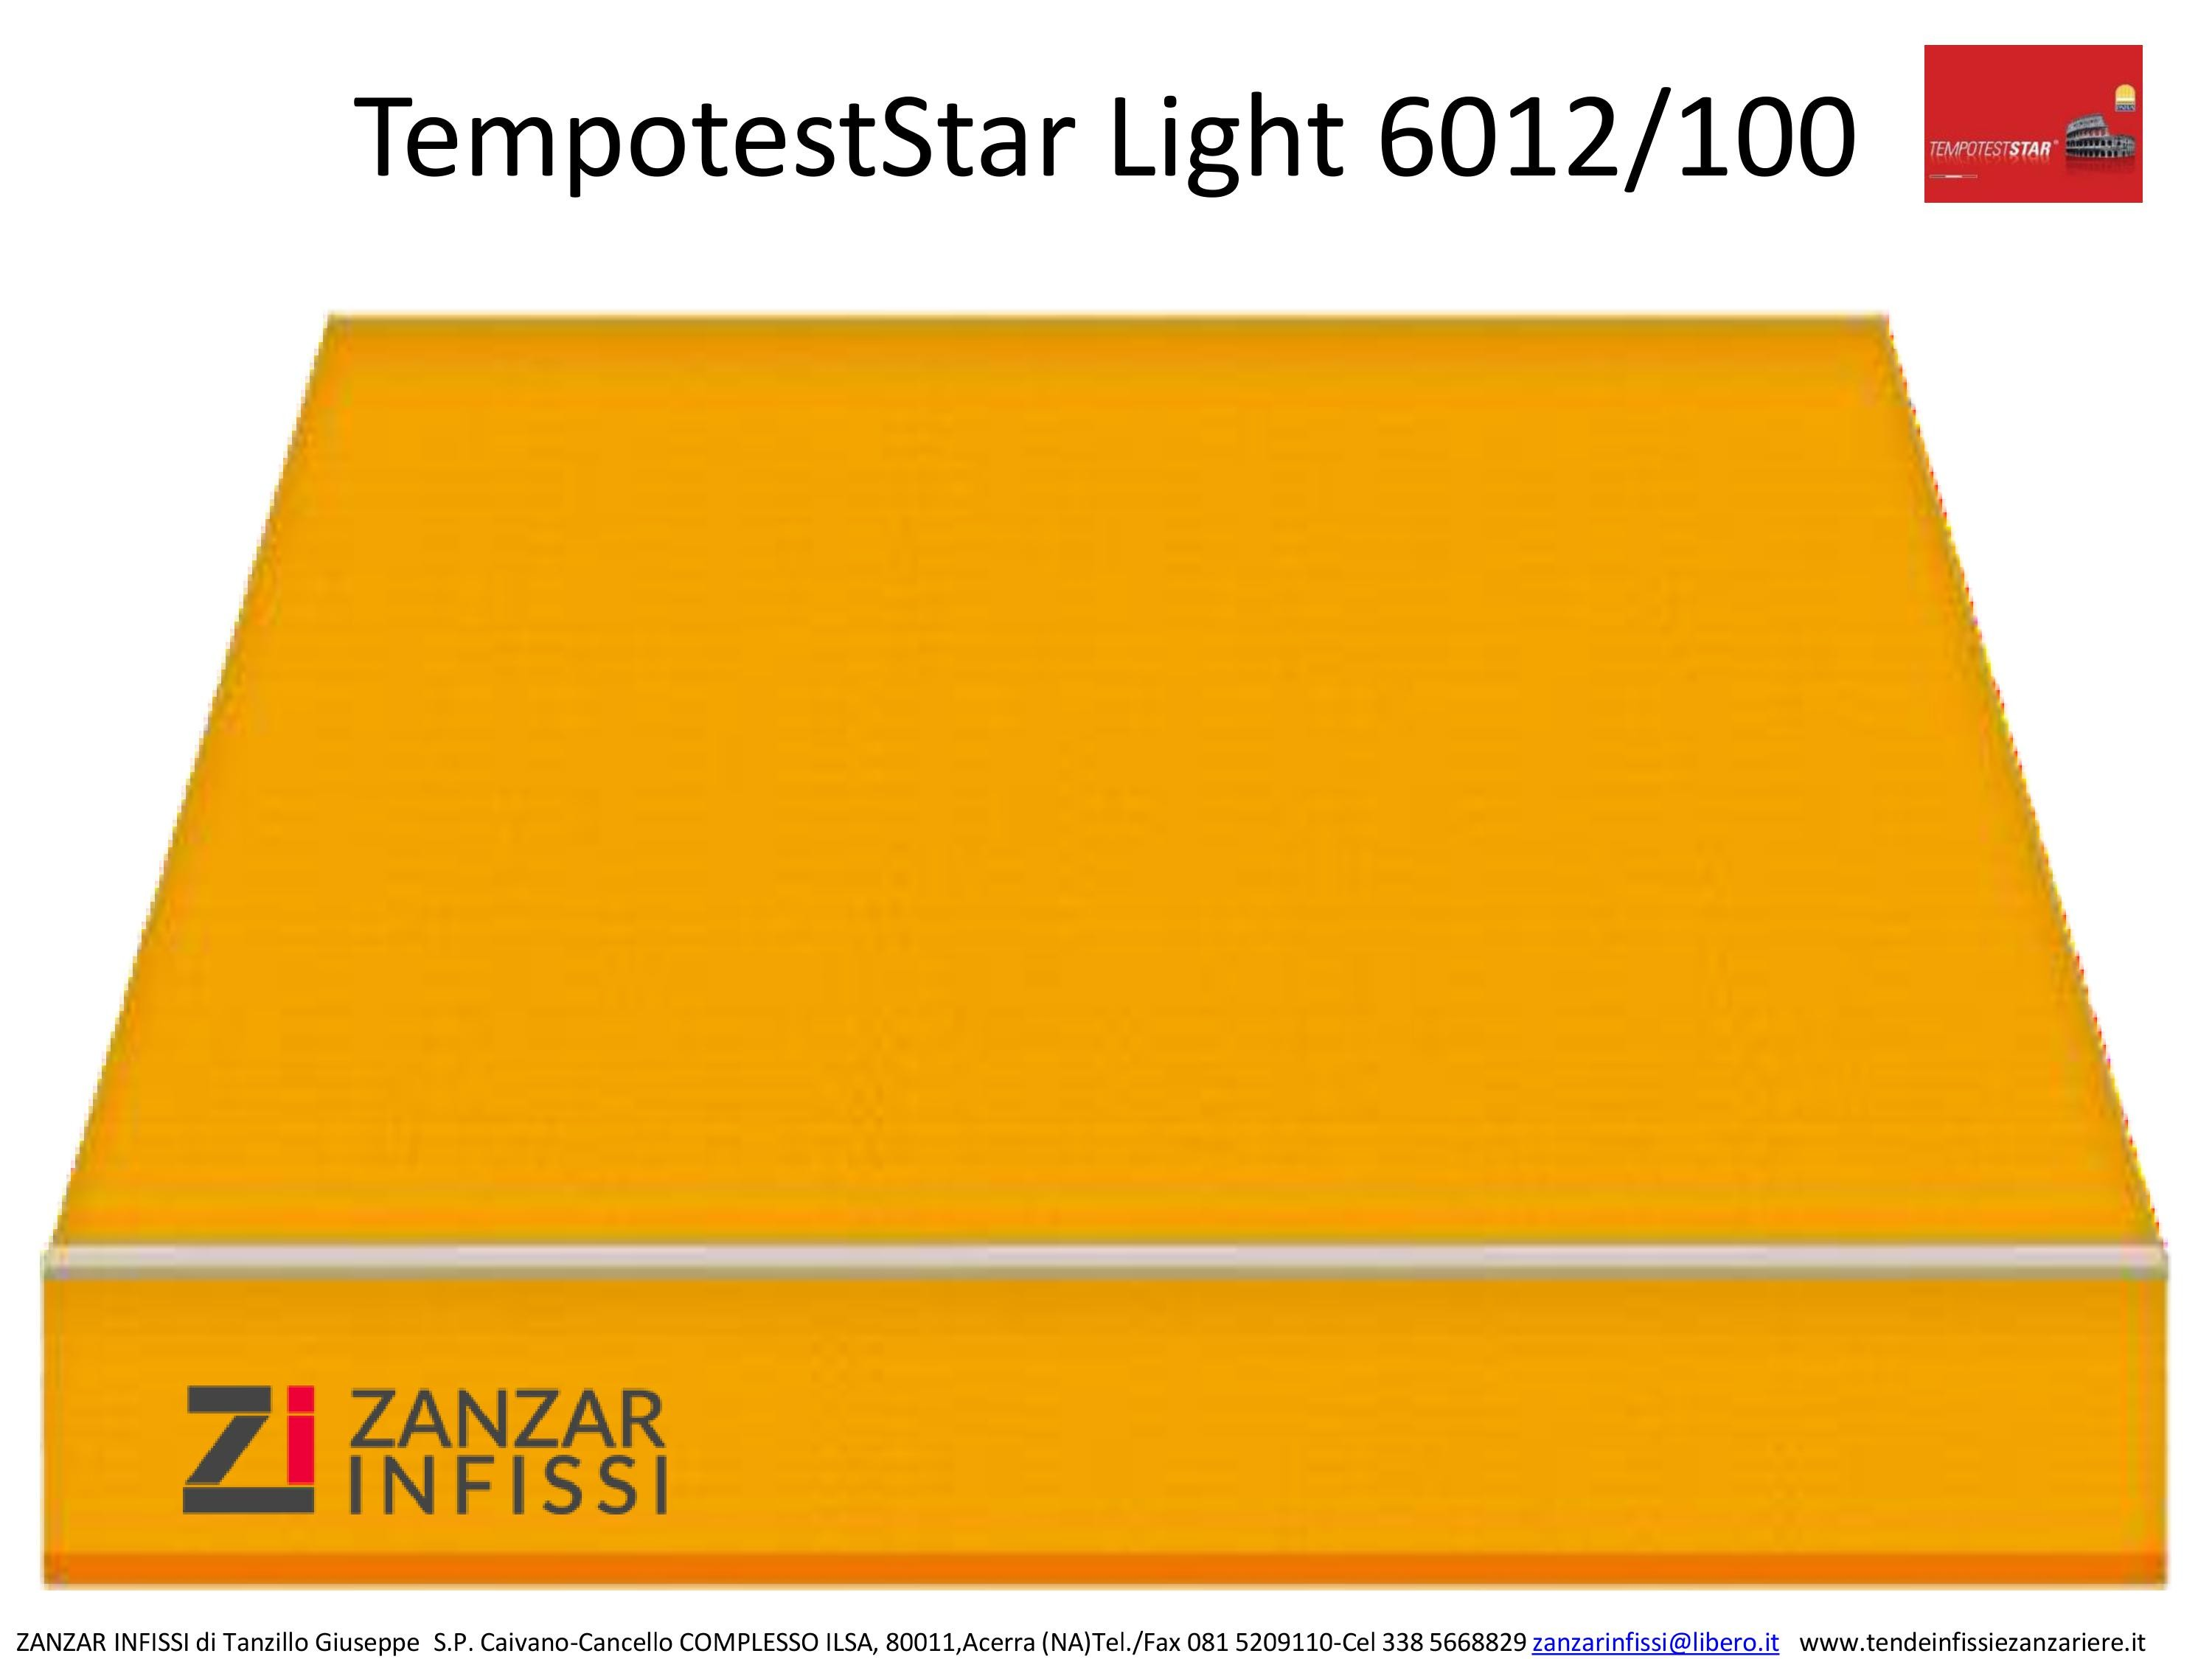 Tempotest star light 6012/100